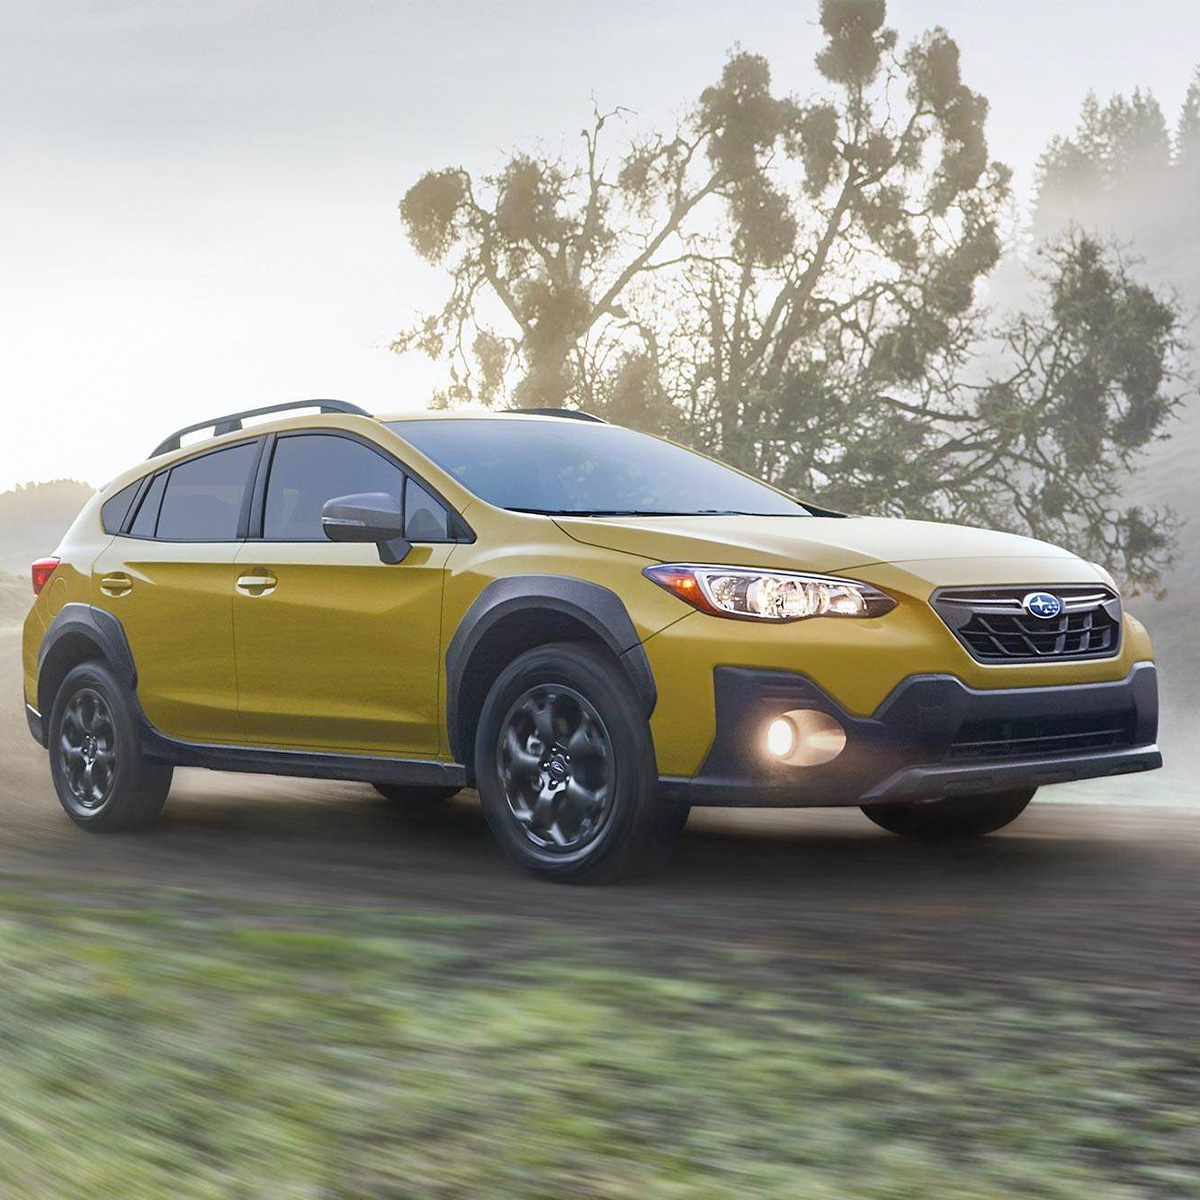 side profile of subaru crosstrek in yellow color with headlights on driving through a foggy morning near a lake